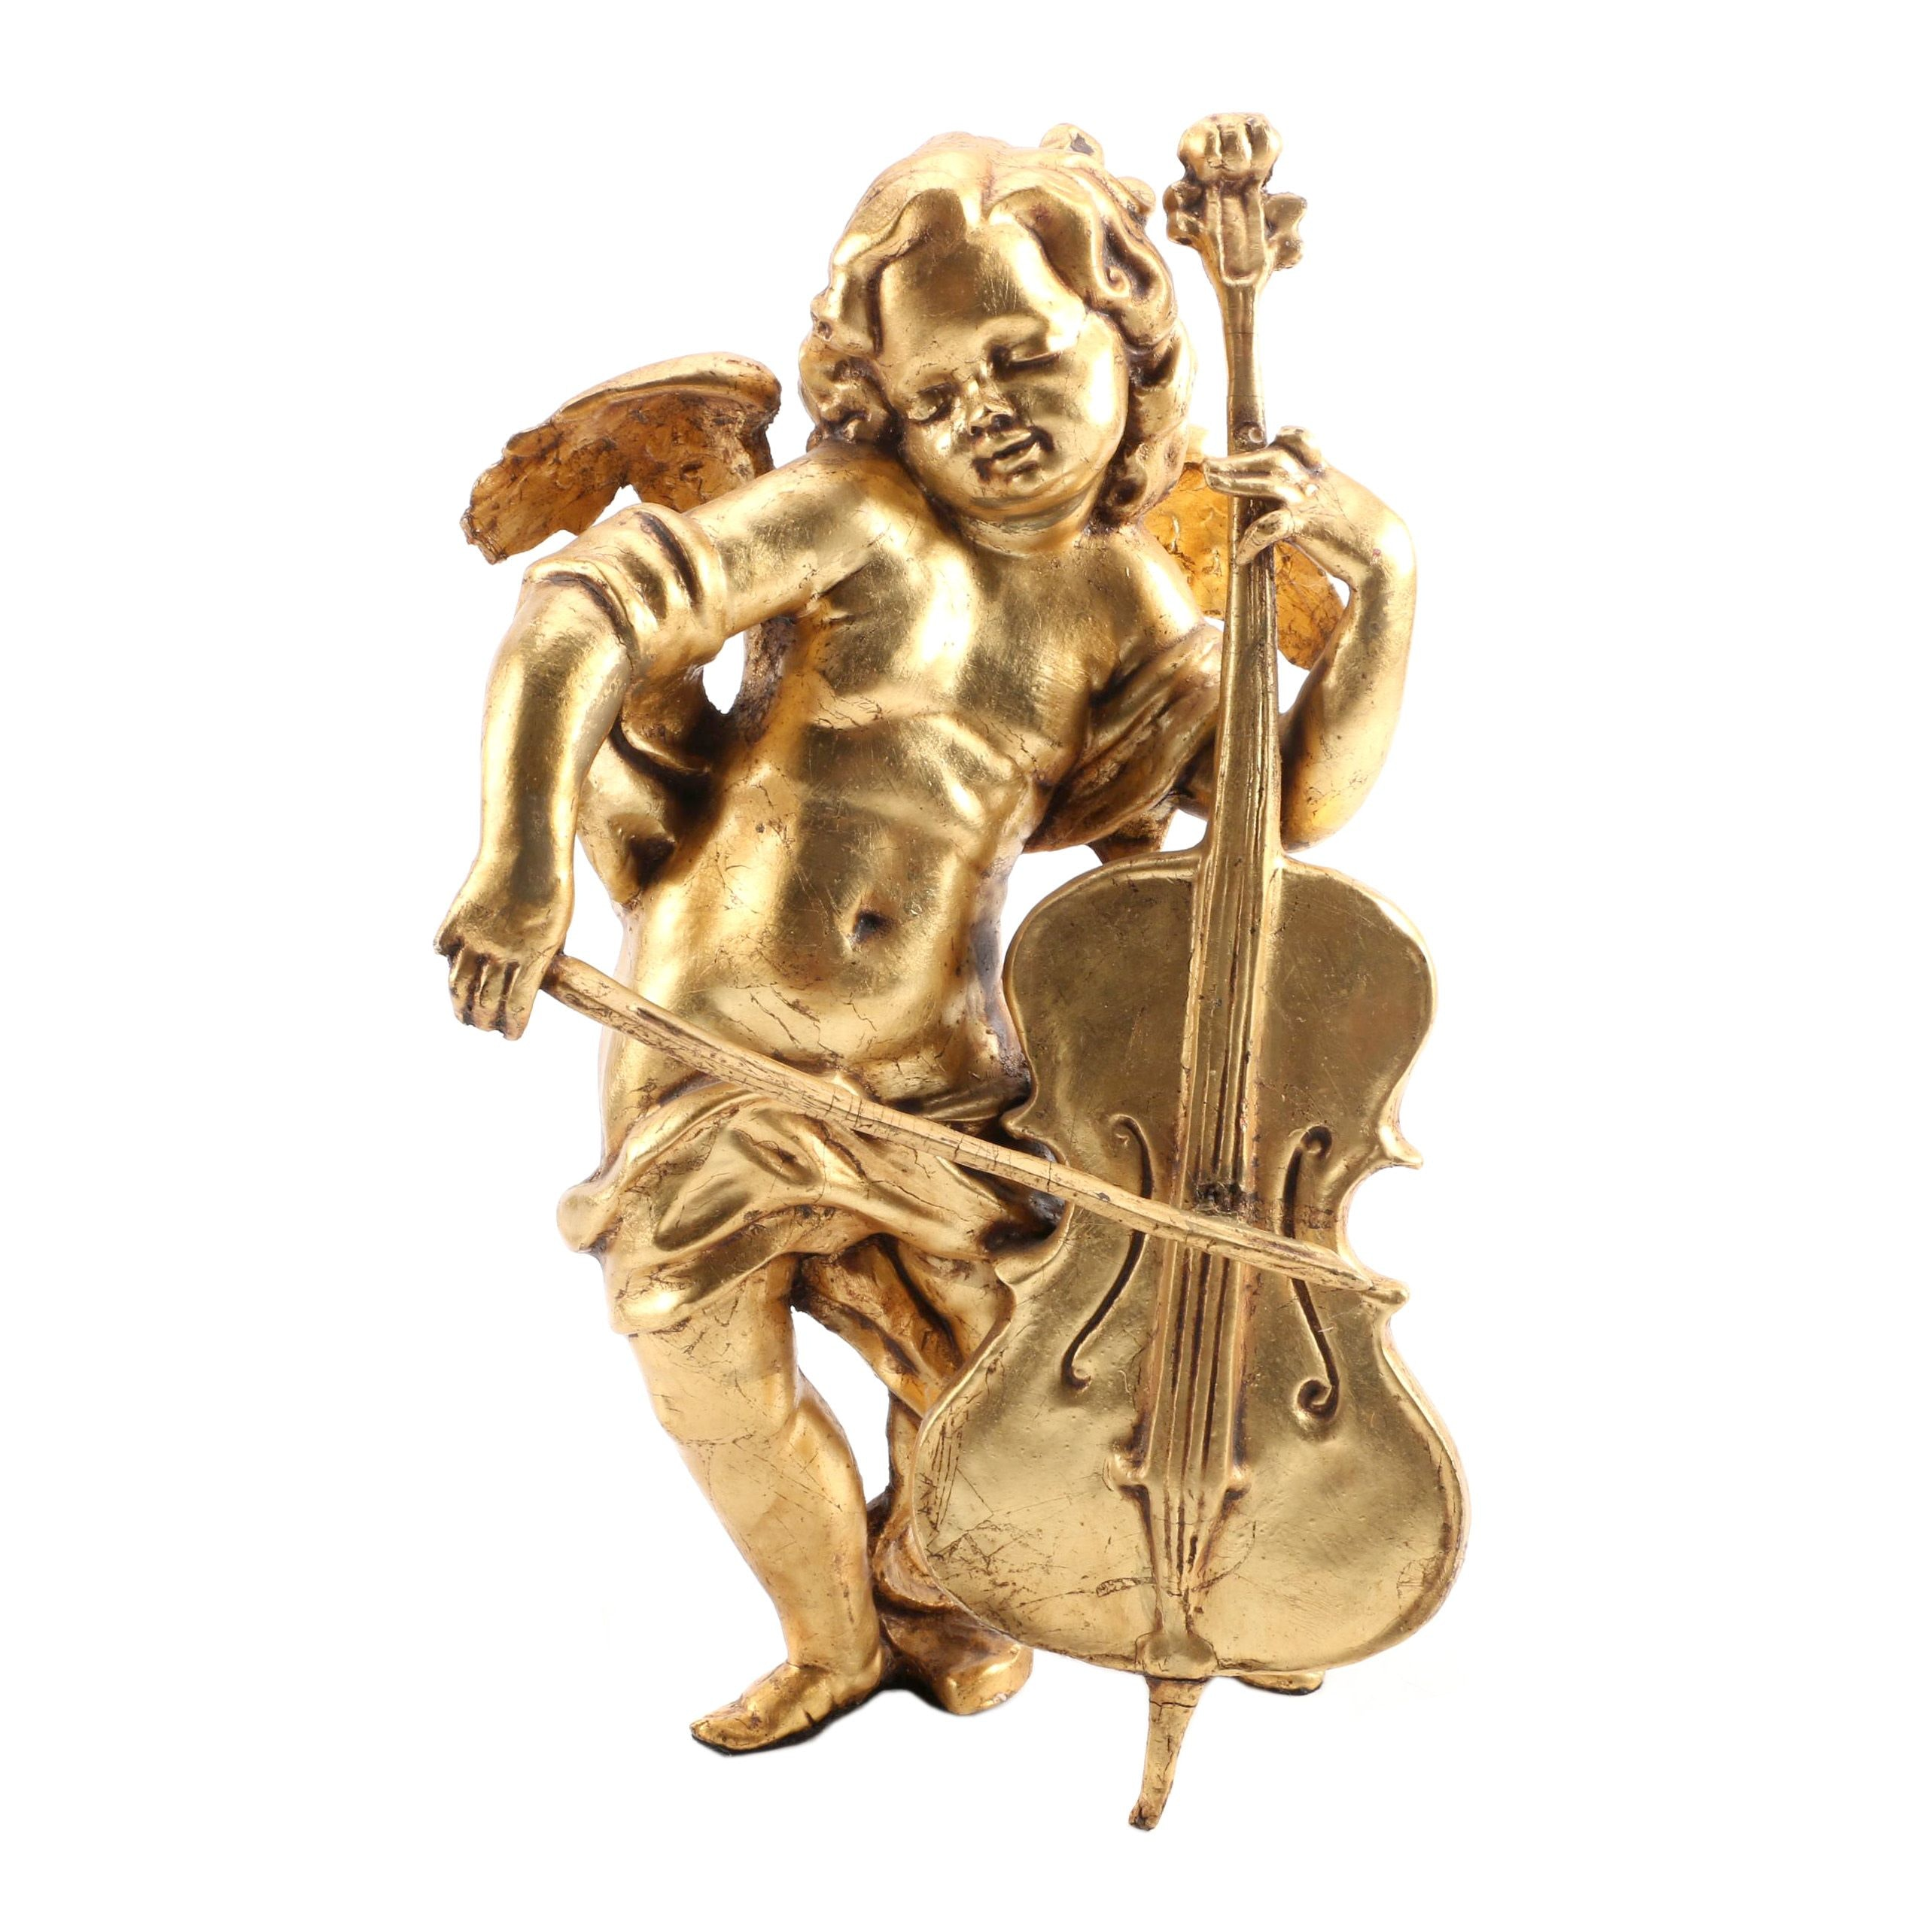 Gold-Tone Figurine of Cupid Playing an Instrument